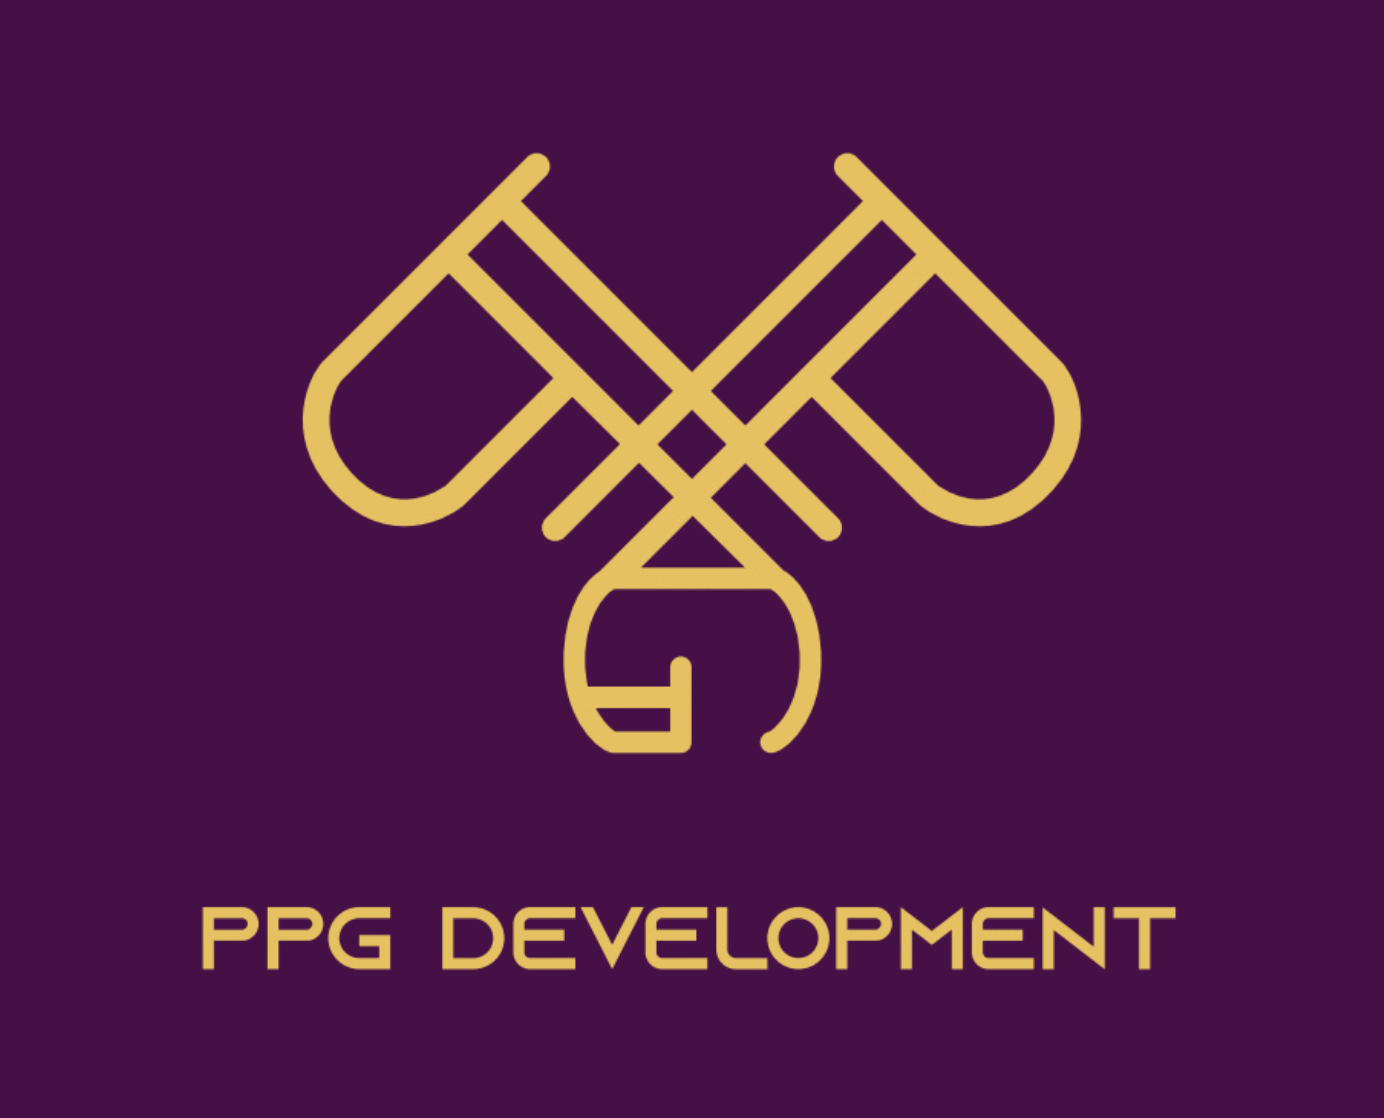 PPG Development